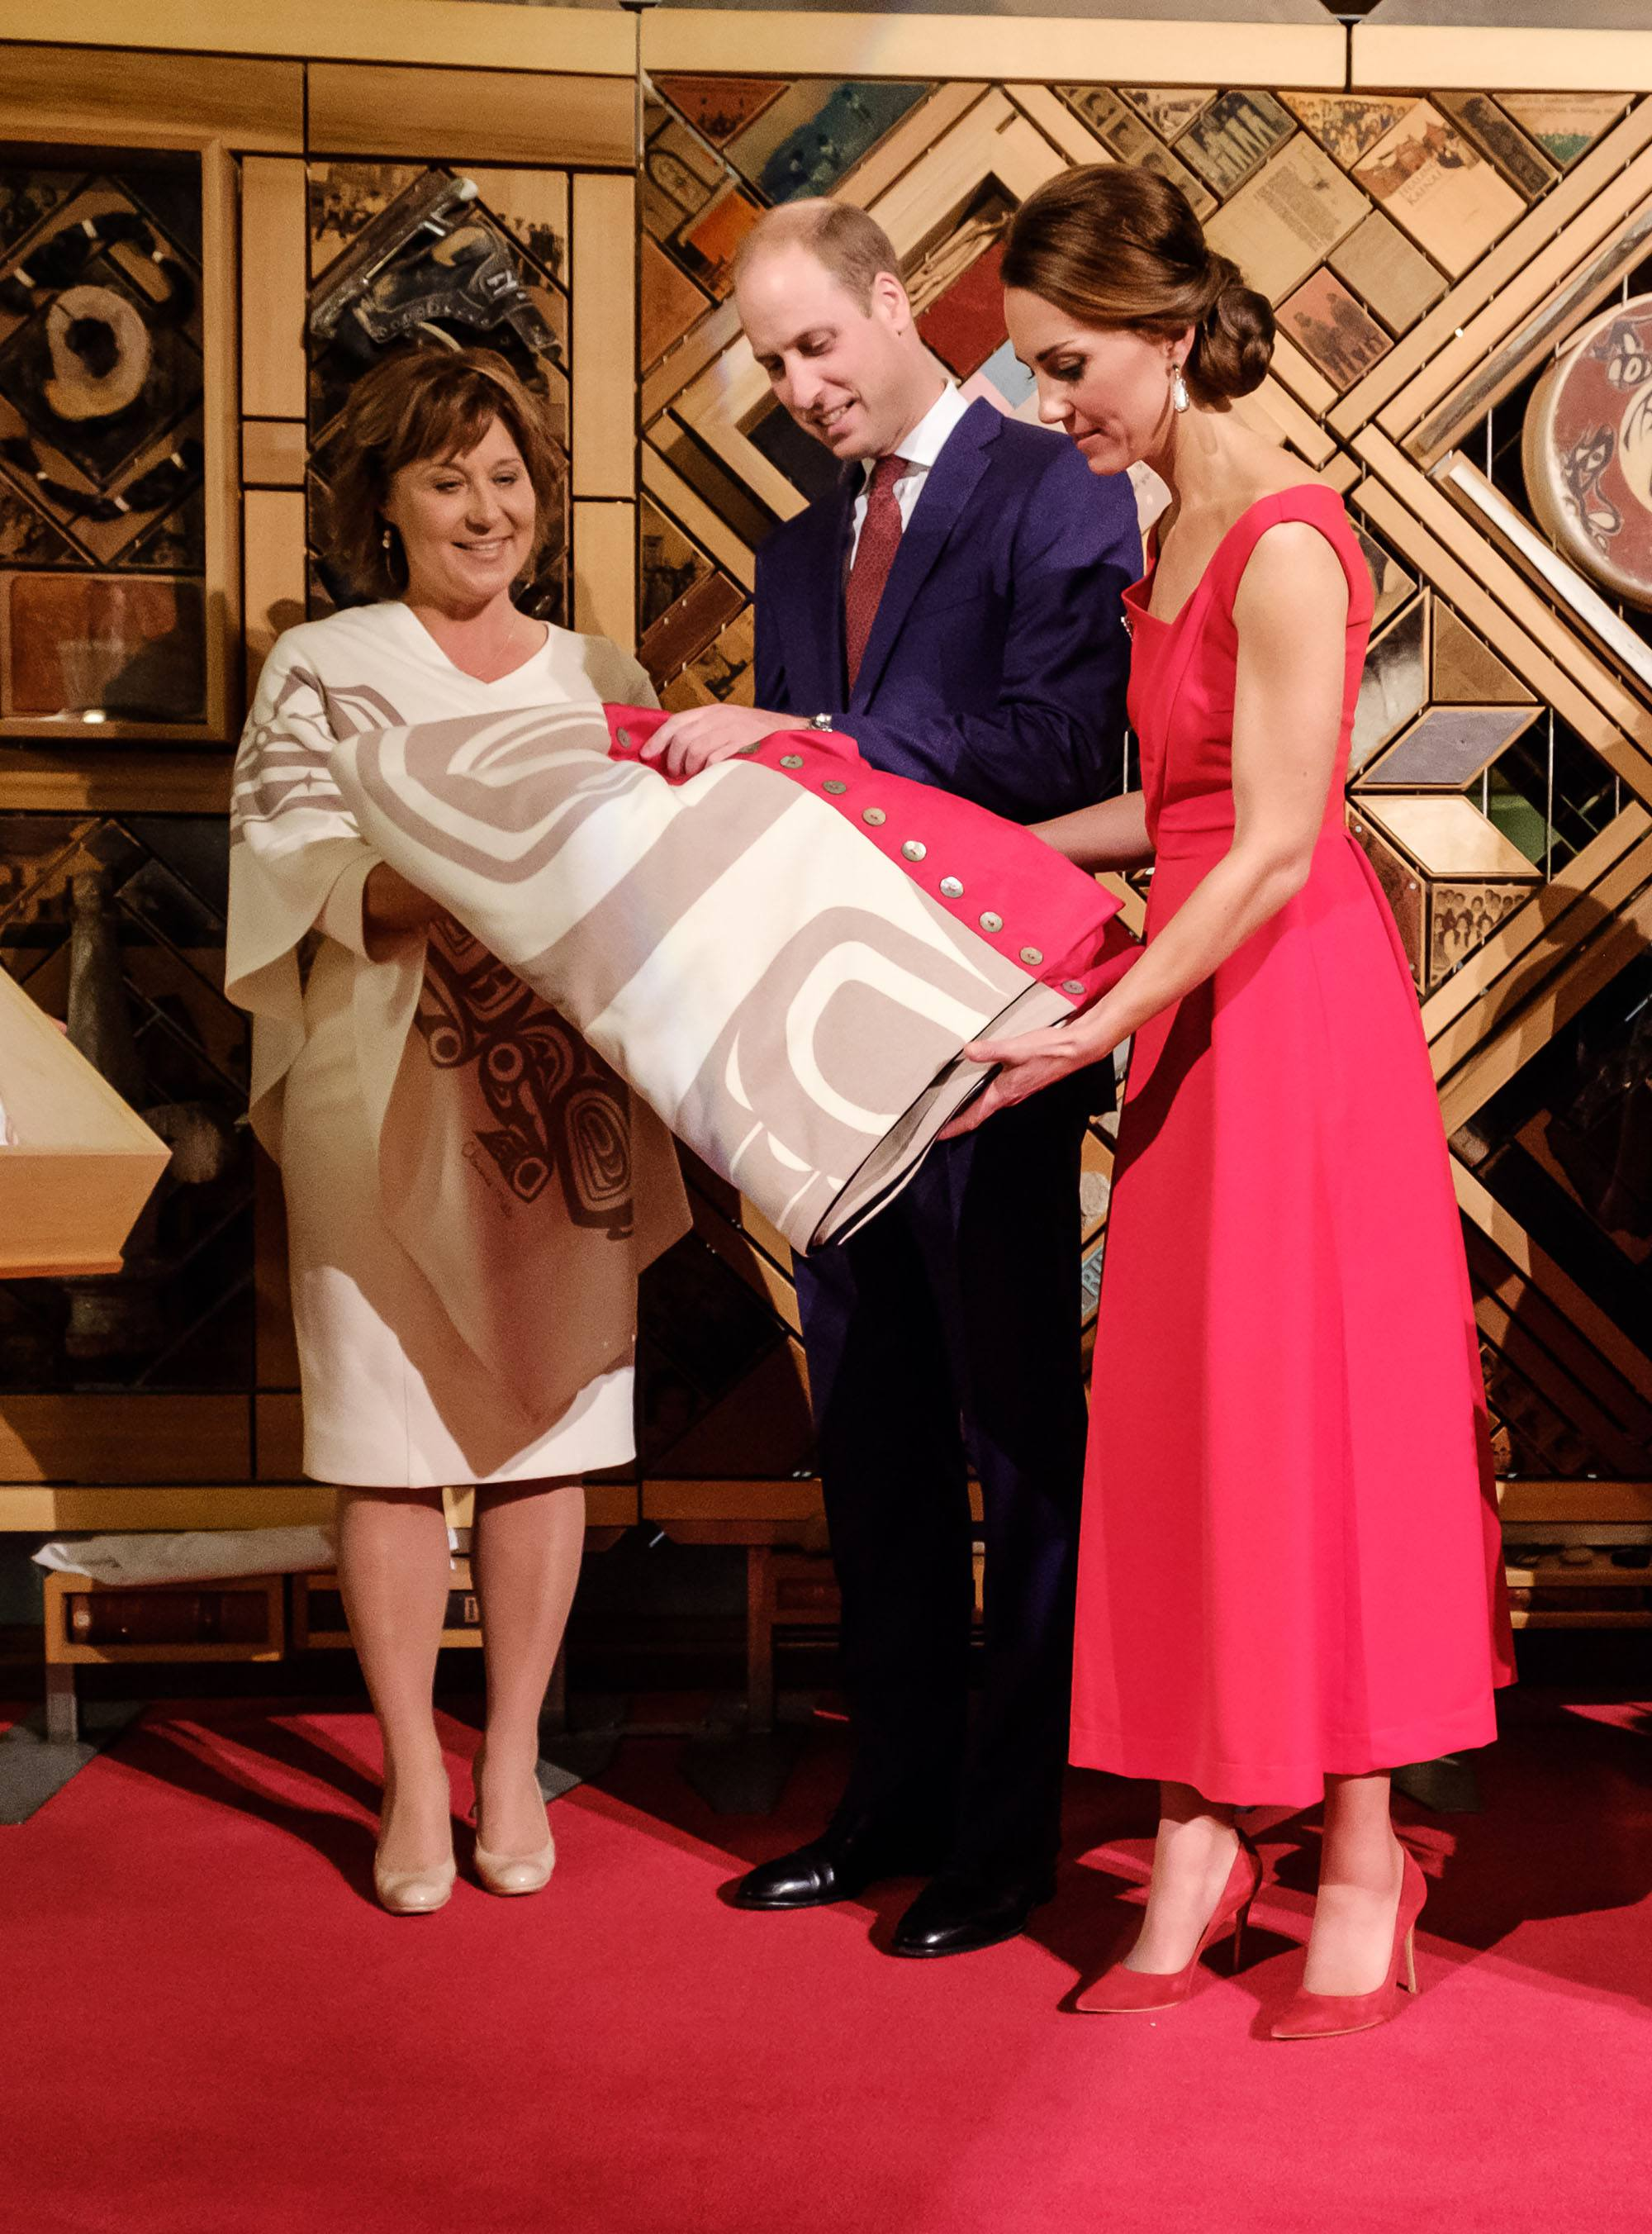 Prince William and the Duchess of Cambridge receive a bear blanket during the royal tour of BC in 2016 (Province of BC)